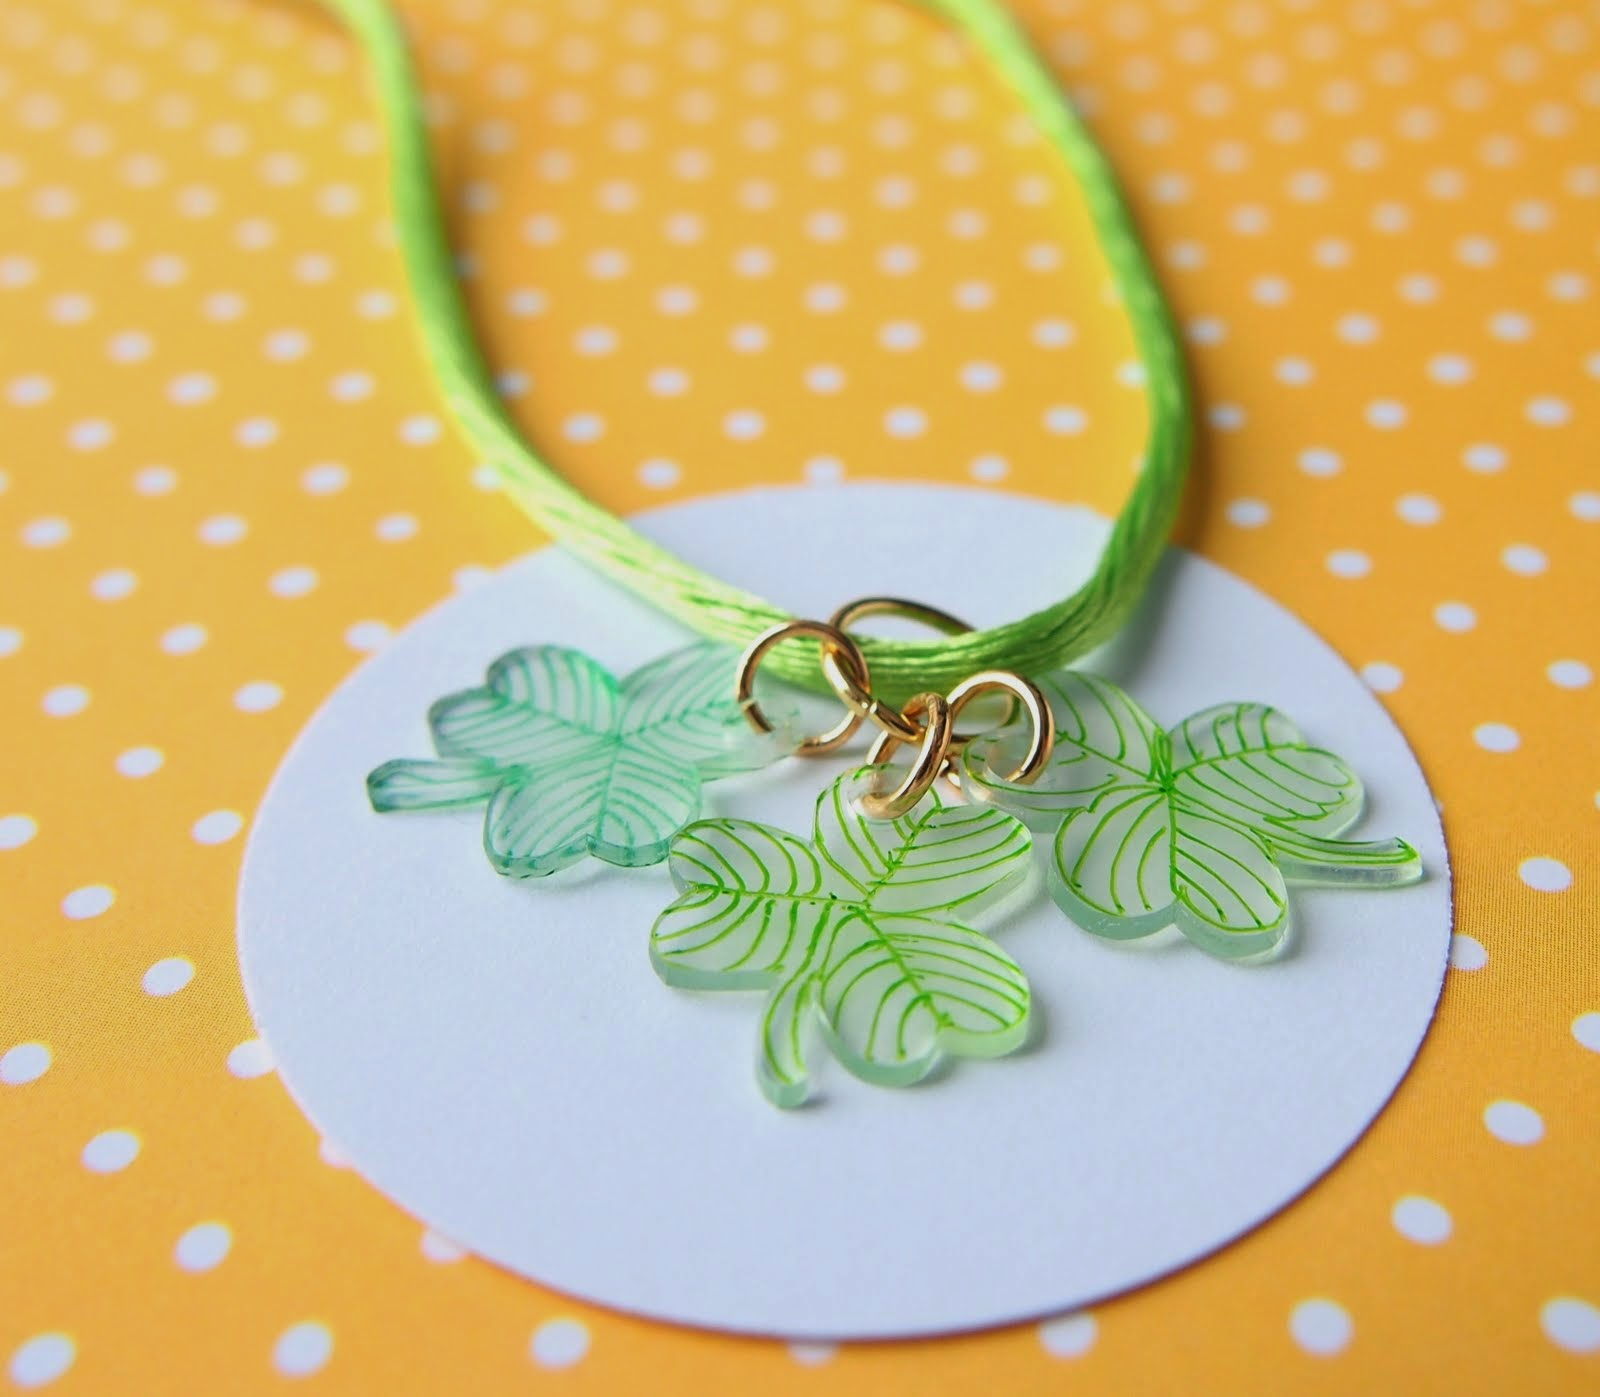 The Tiny Funnel Lucky Charm Necklaces Diy Shrinky Dinks